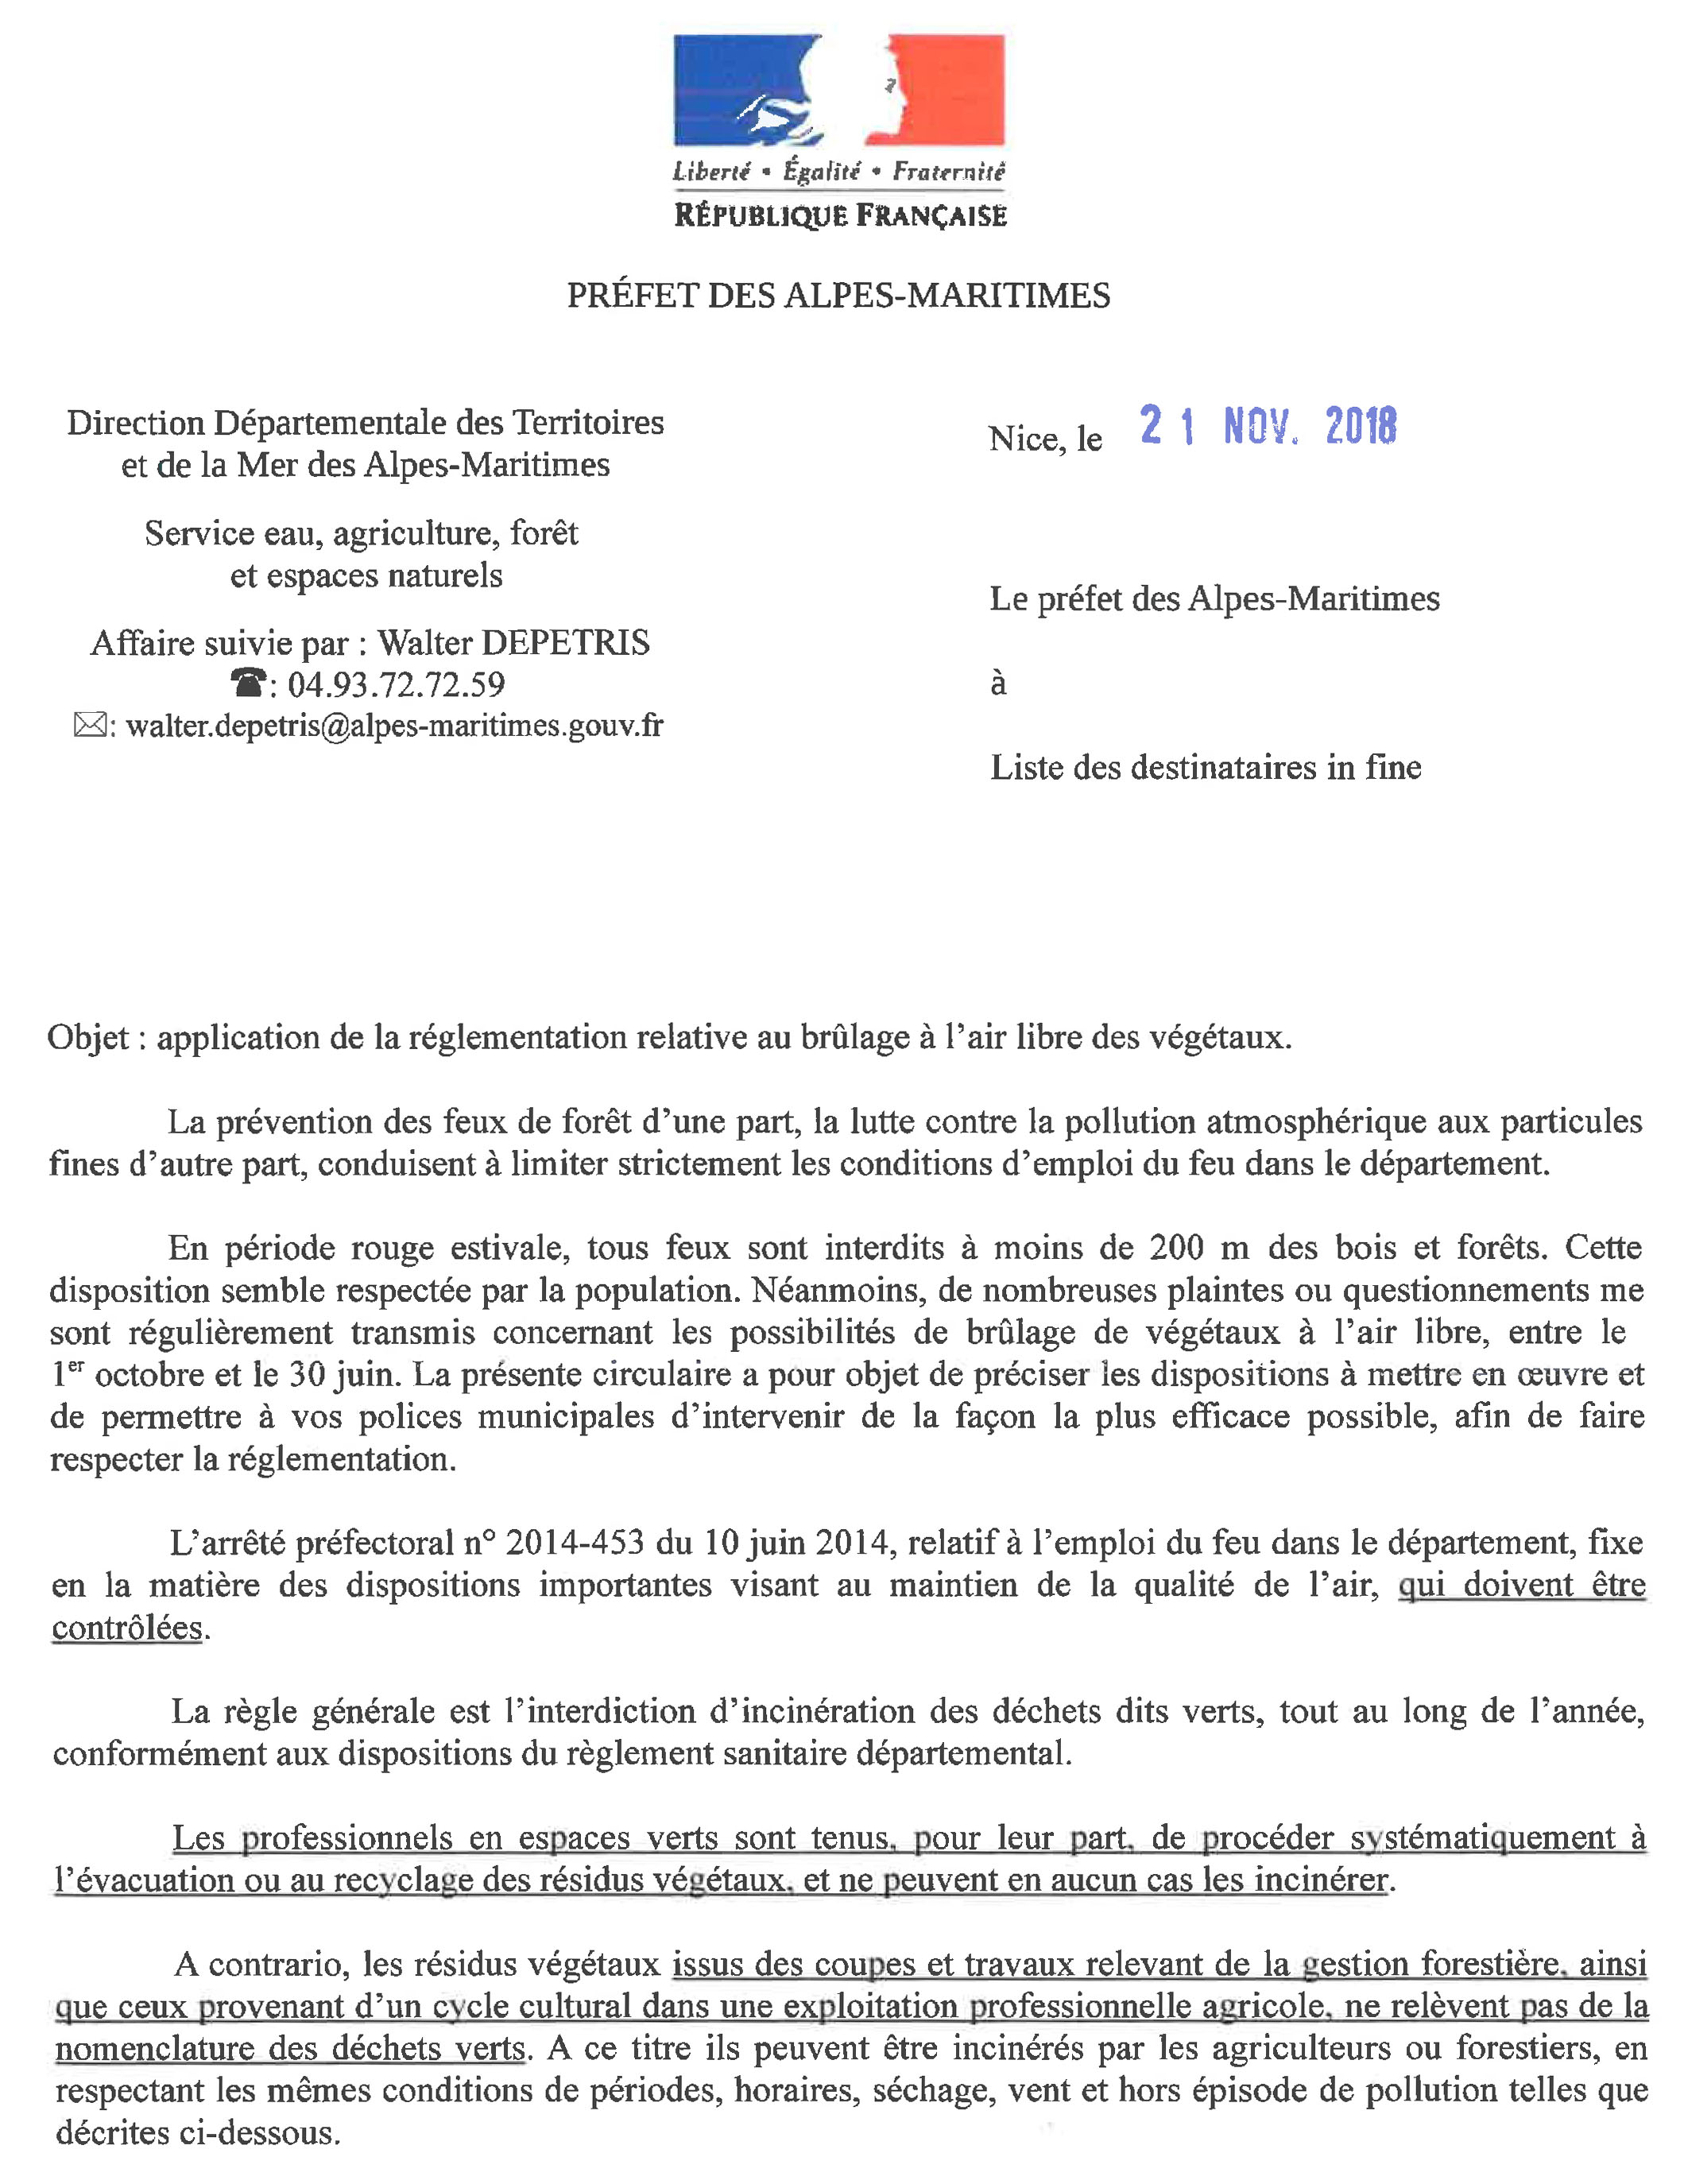 20181123 Application de la reglementation relative au brulage a l air libre des vegetaux 1